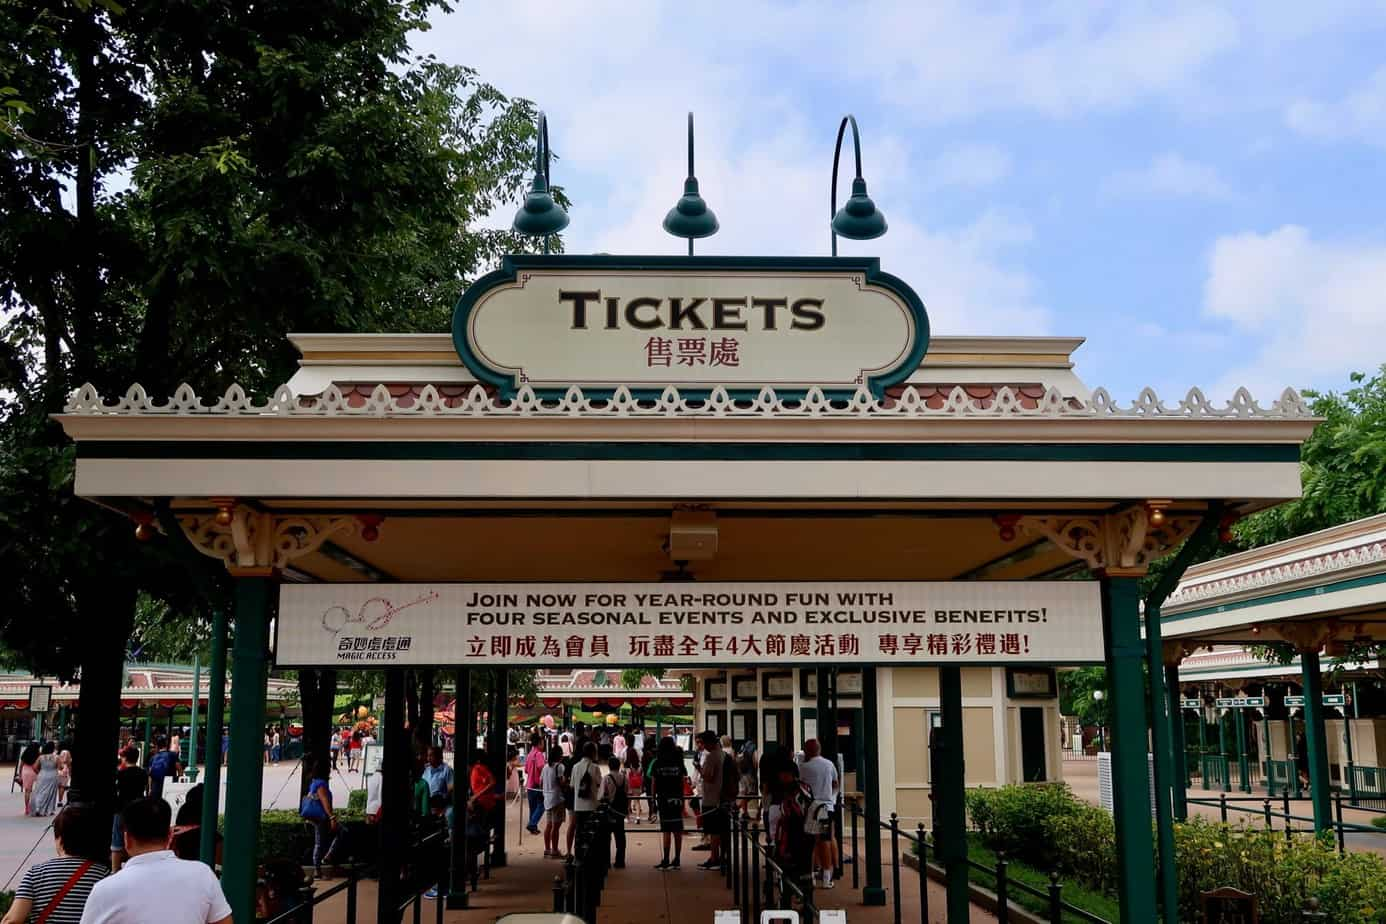 Skip the lines at Disneyland with discount tickets, crowd calendars, touring plans & more from Undercover Tourist. Trusted since , rated A+ in BBB.